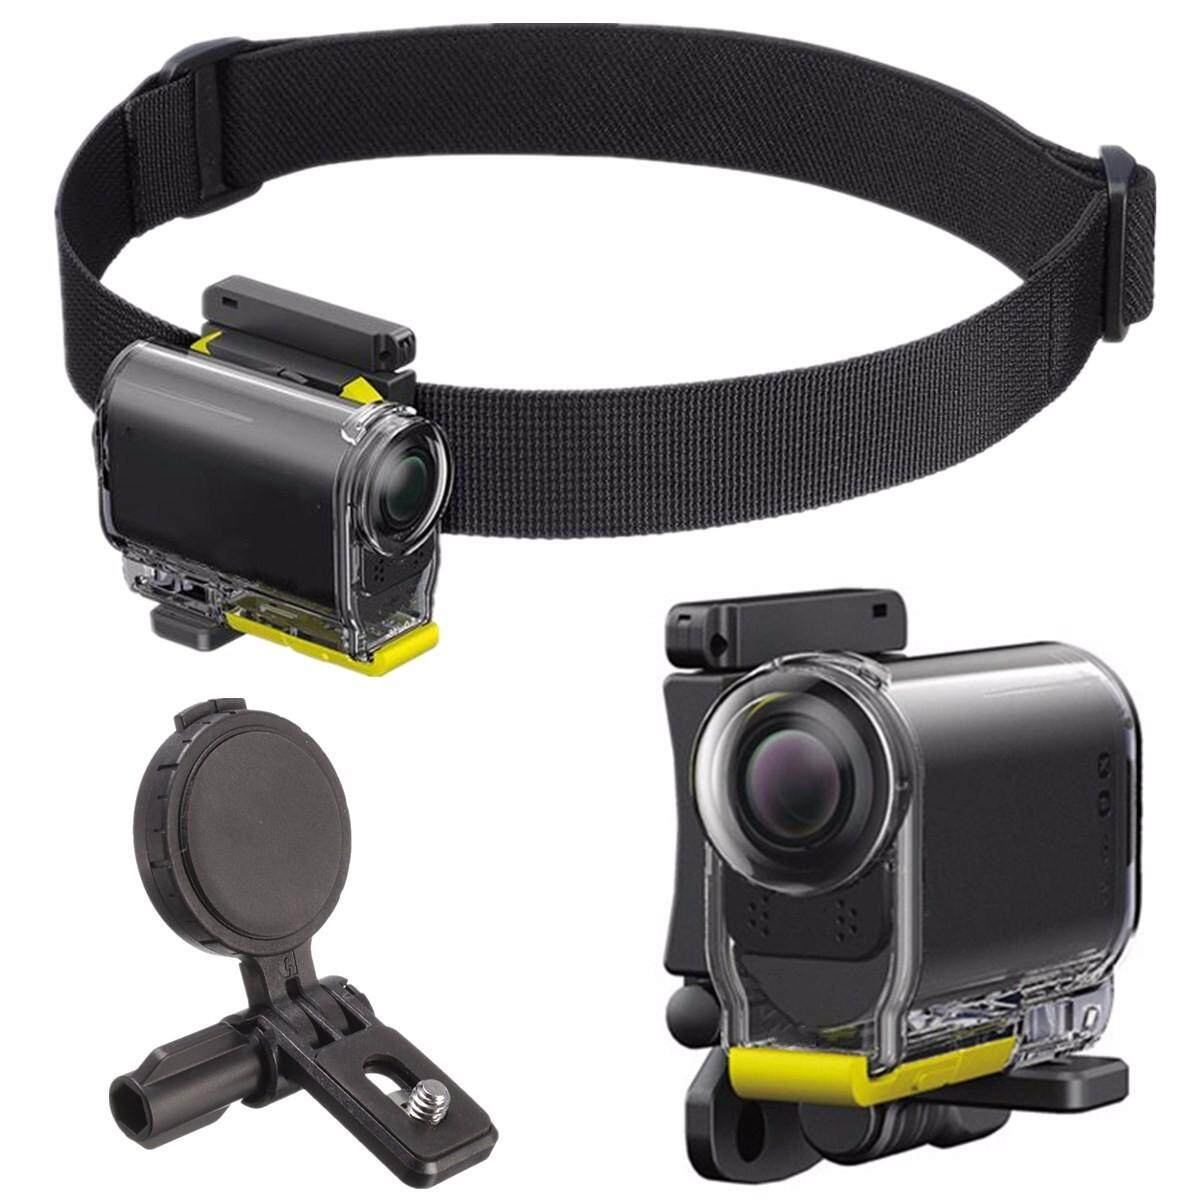 UHM1 Universal Head Strap Mount Kit For Sony Action Camera AS30V AS15 AS100V - intl